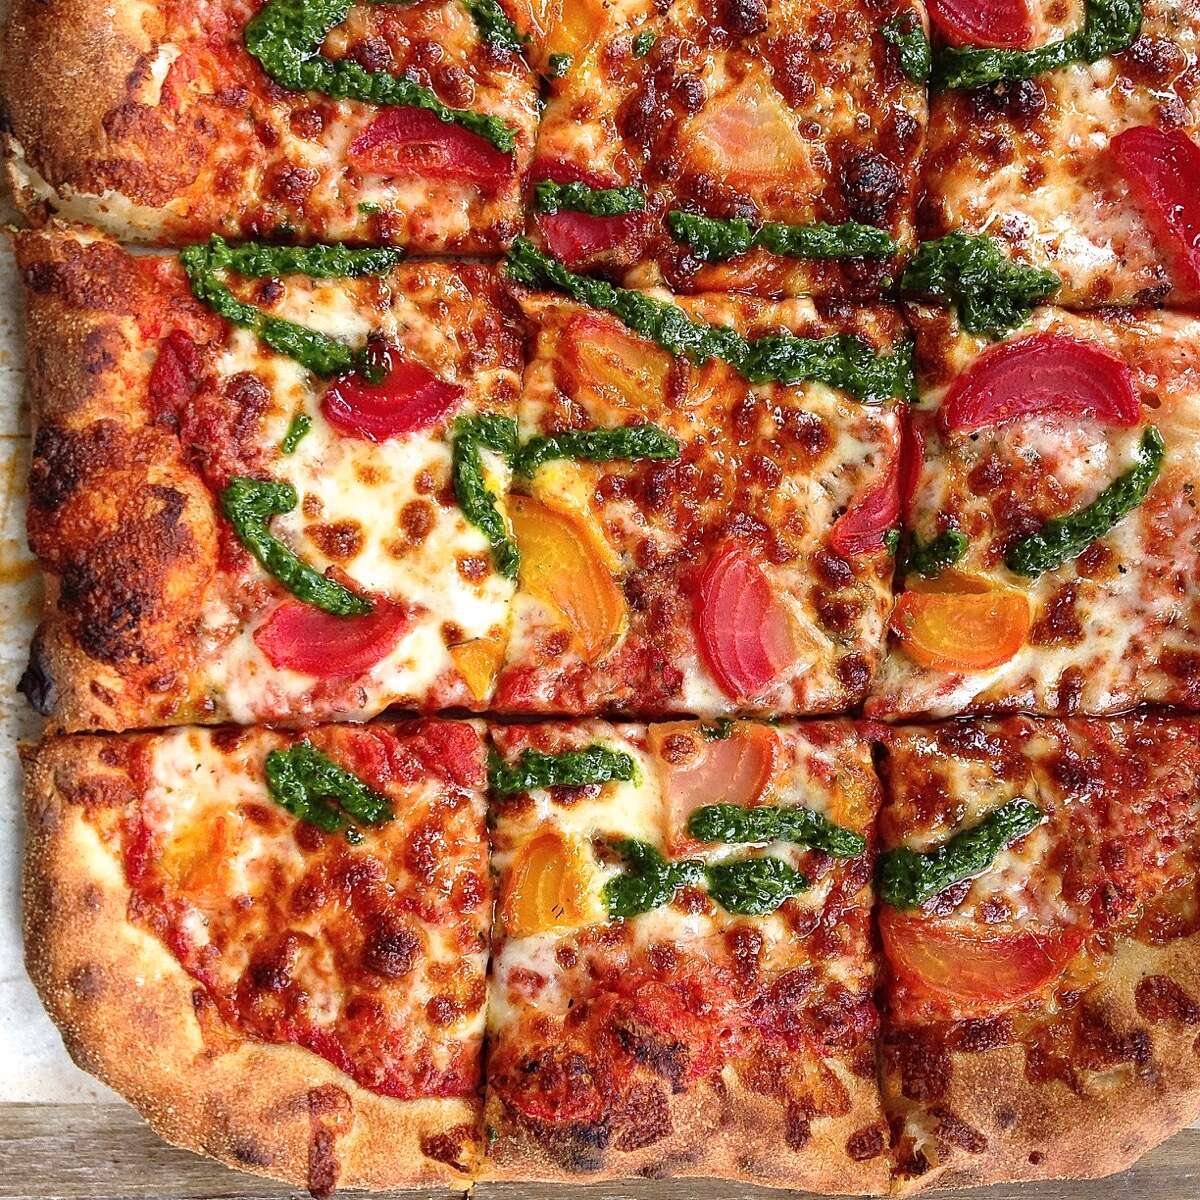 A square Sicilian-style pizza topped with golden beets, tomato sauce and cheese and drizzled with parsley pesto.